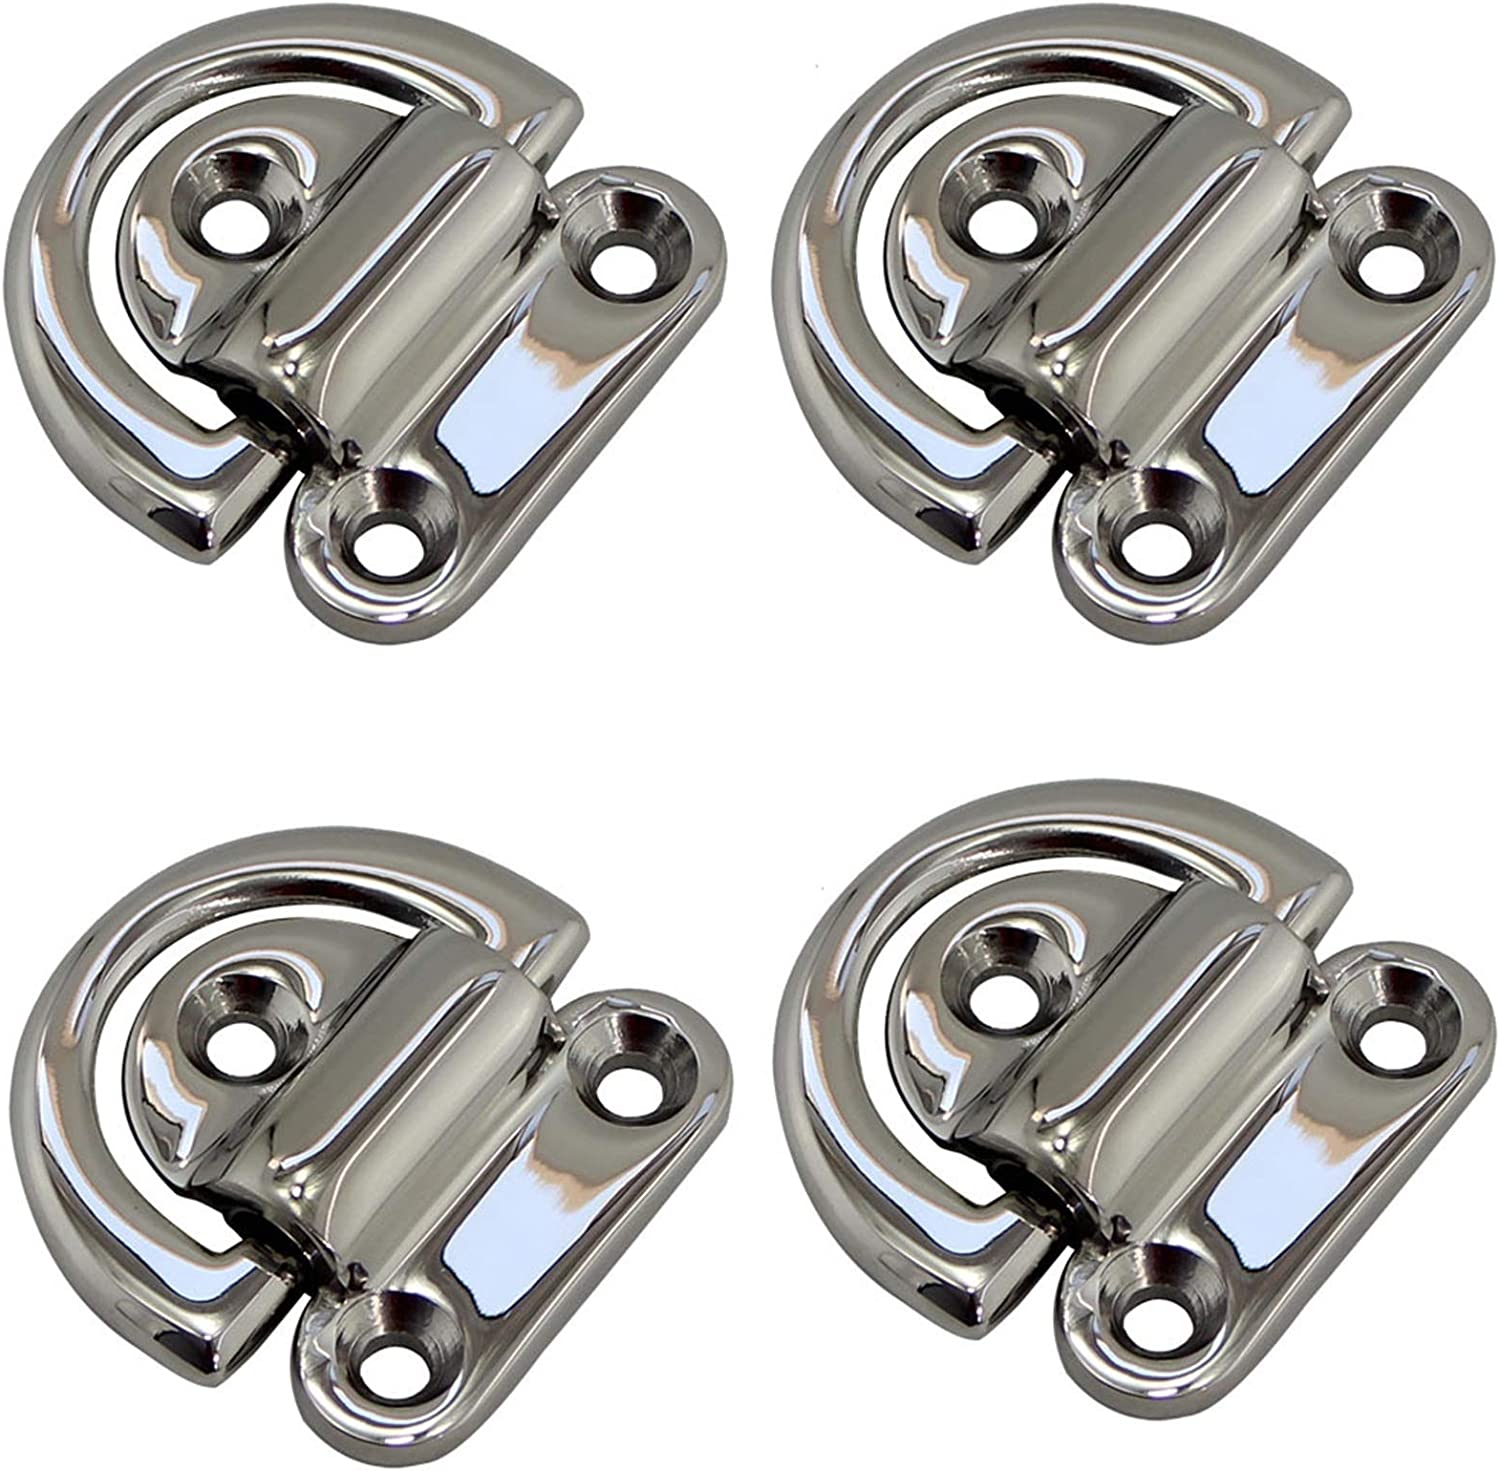 Durable Mirror Finish Stainless Boat Folding Pad Eye Stainless Steel 316 Marine Yacht Folding Pad Eye Cleat With D Ring 4pcs 6mm